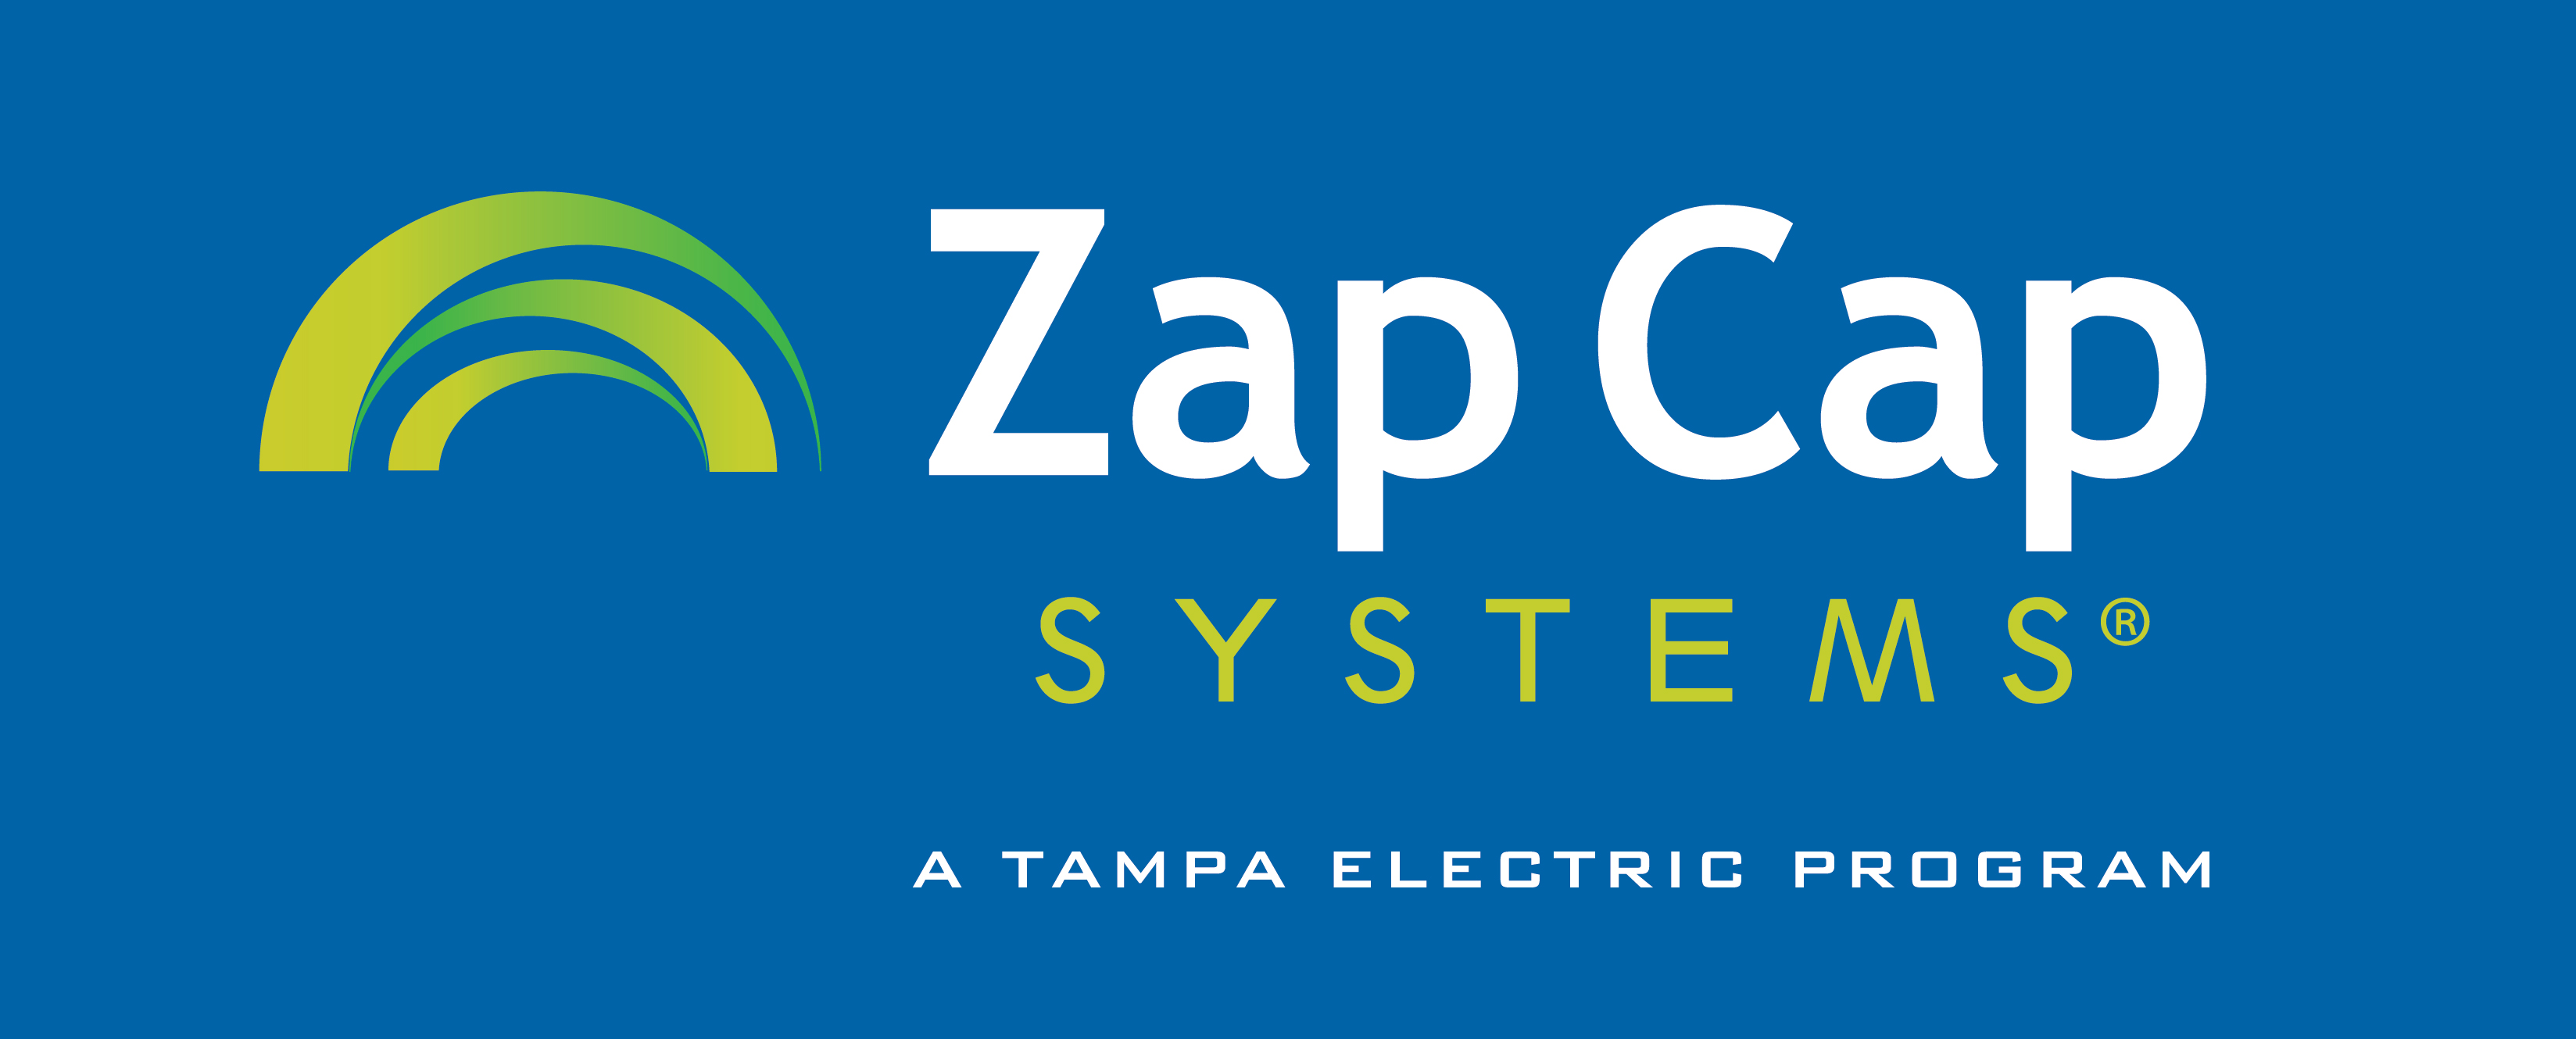 Tampa Electric Awards Zap Cap Media Buy To Brandmark Advertising